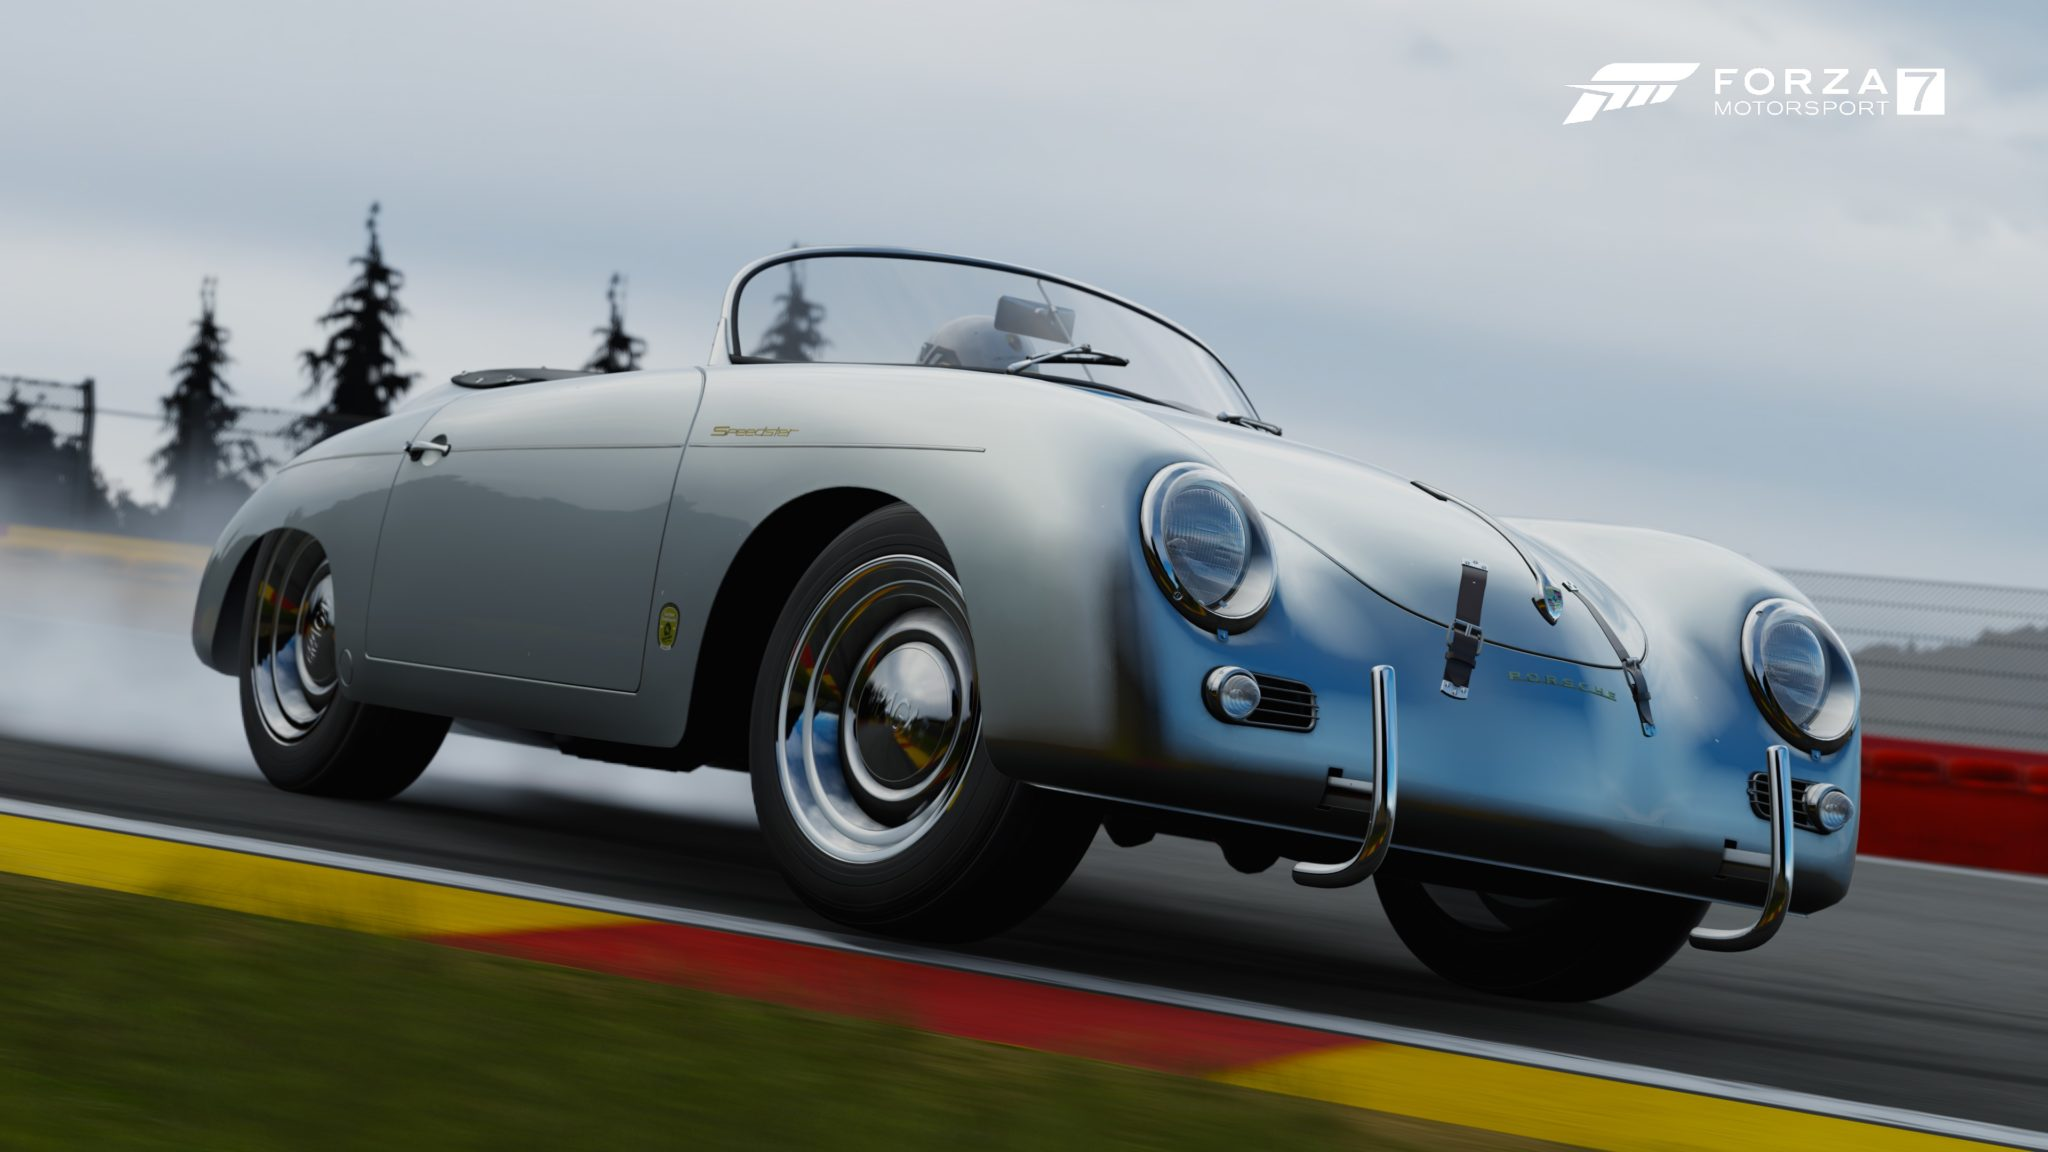 latest fm7 forzathon offers up rare porsche and merc. Black Bedroom Furniture Sets. Home Design Ideas